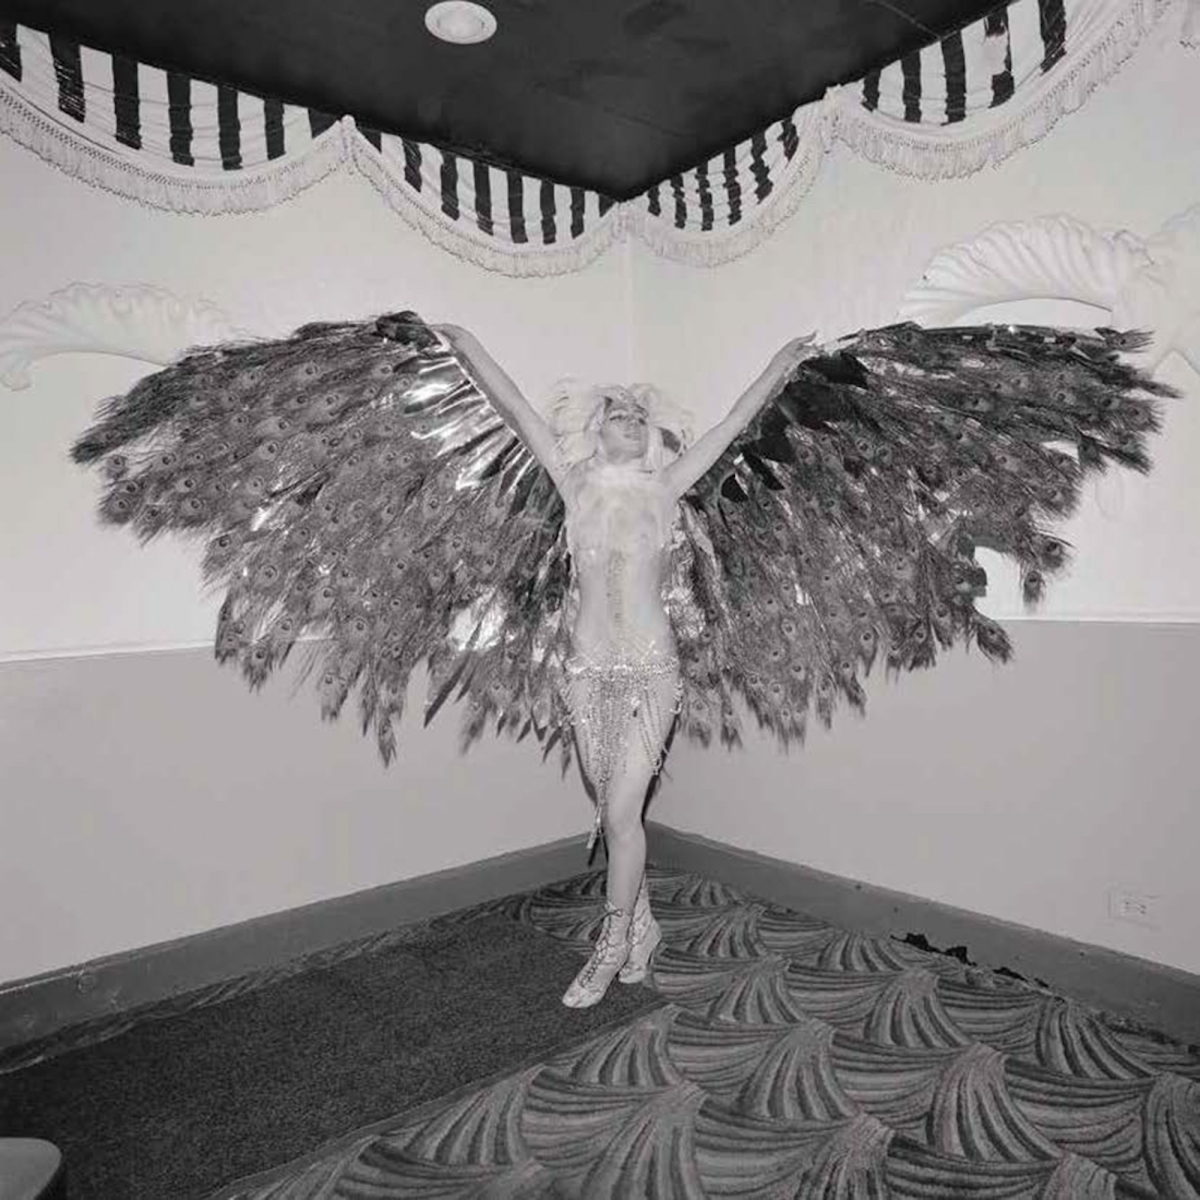 Spreading Wings at the COYOTE Hookers Masquerade Ball, NY, February 1977